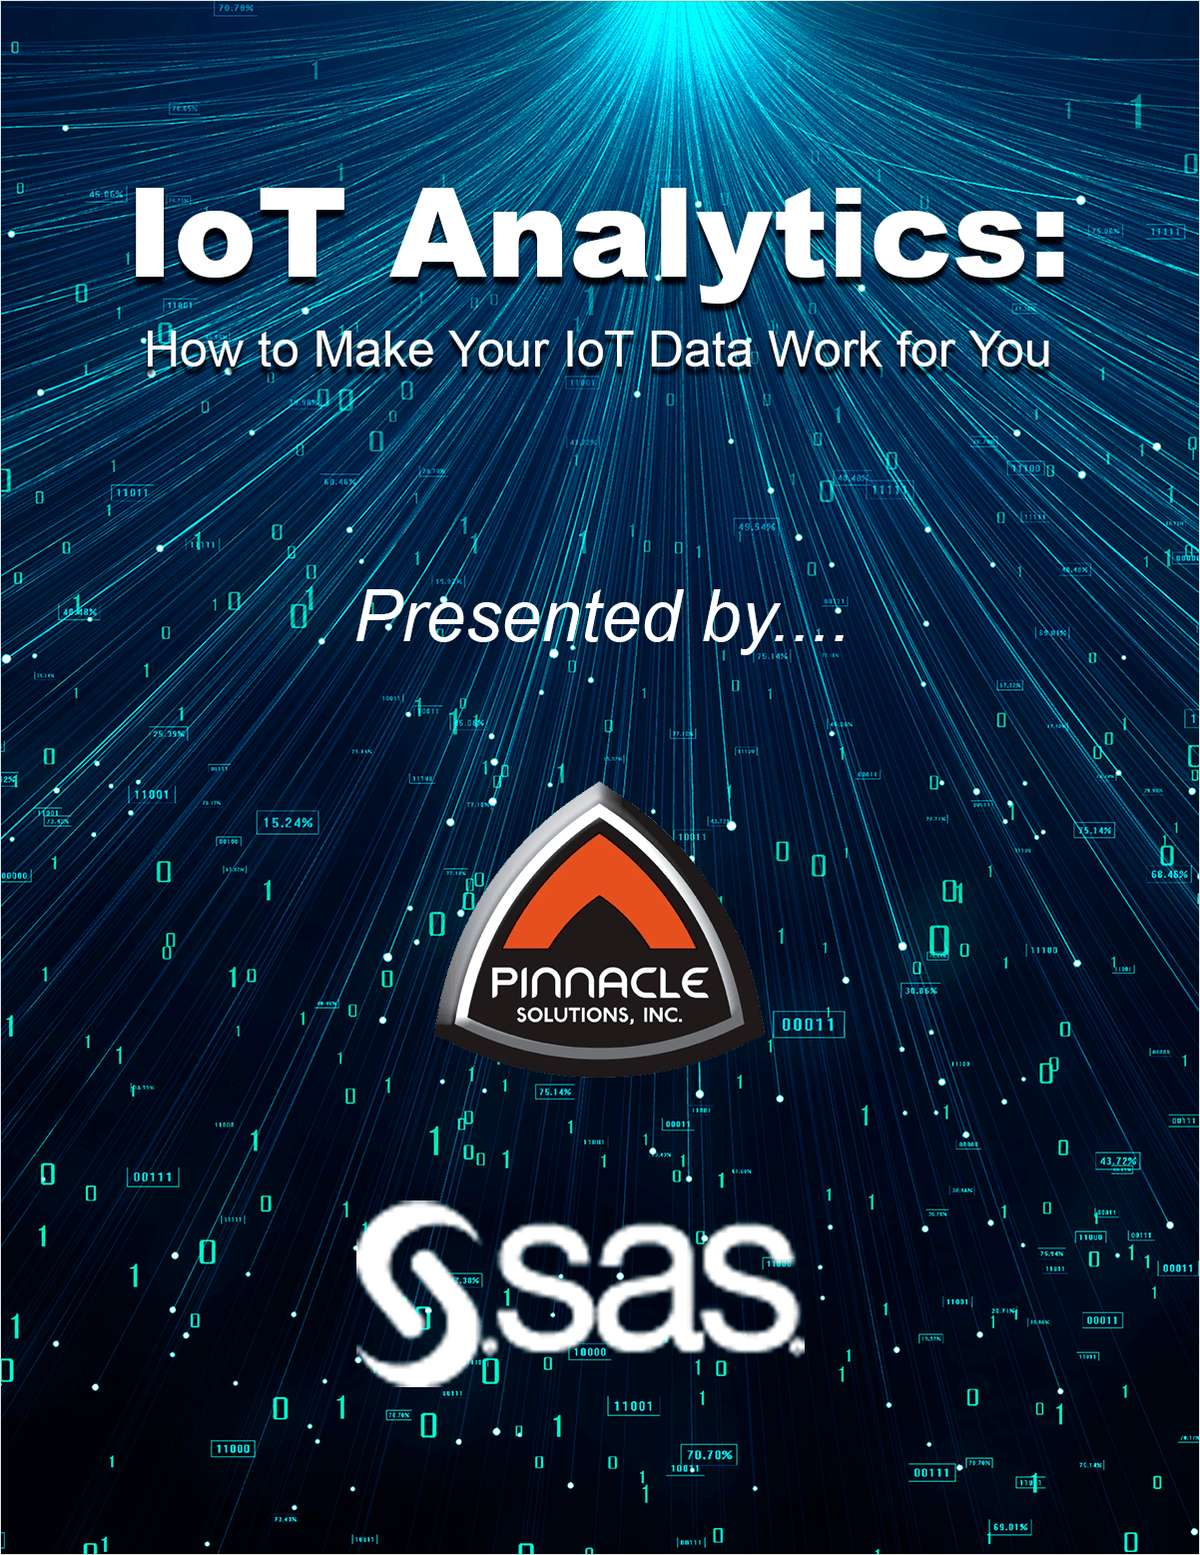 IoT Analytics: How to Make Your IoT Data Work for You